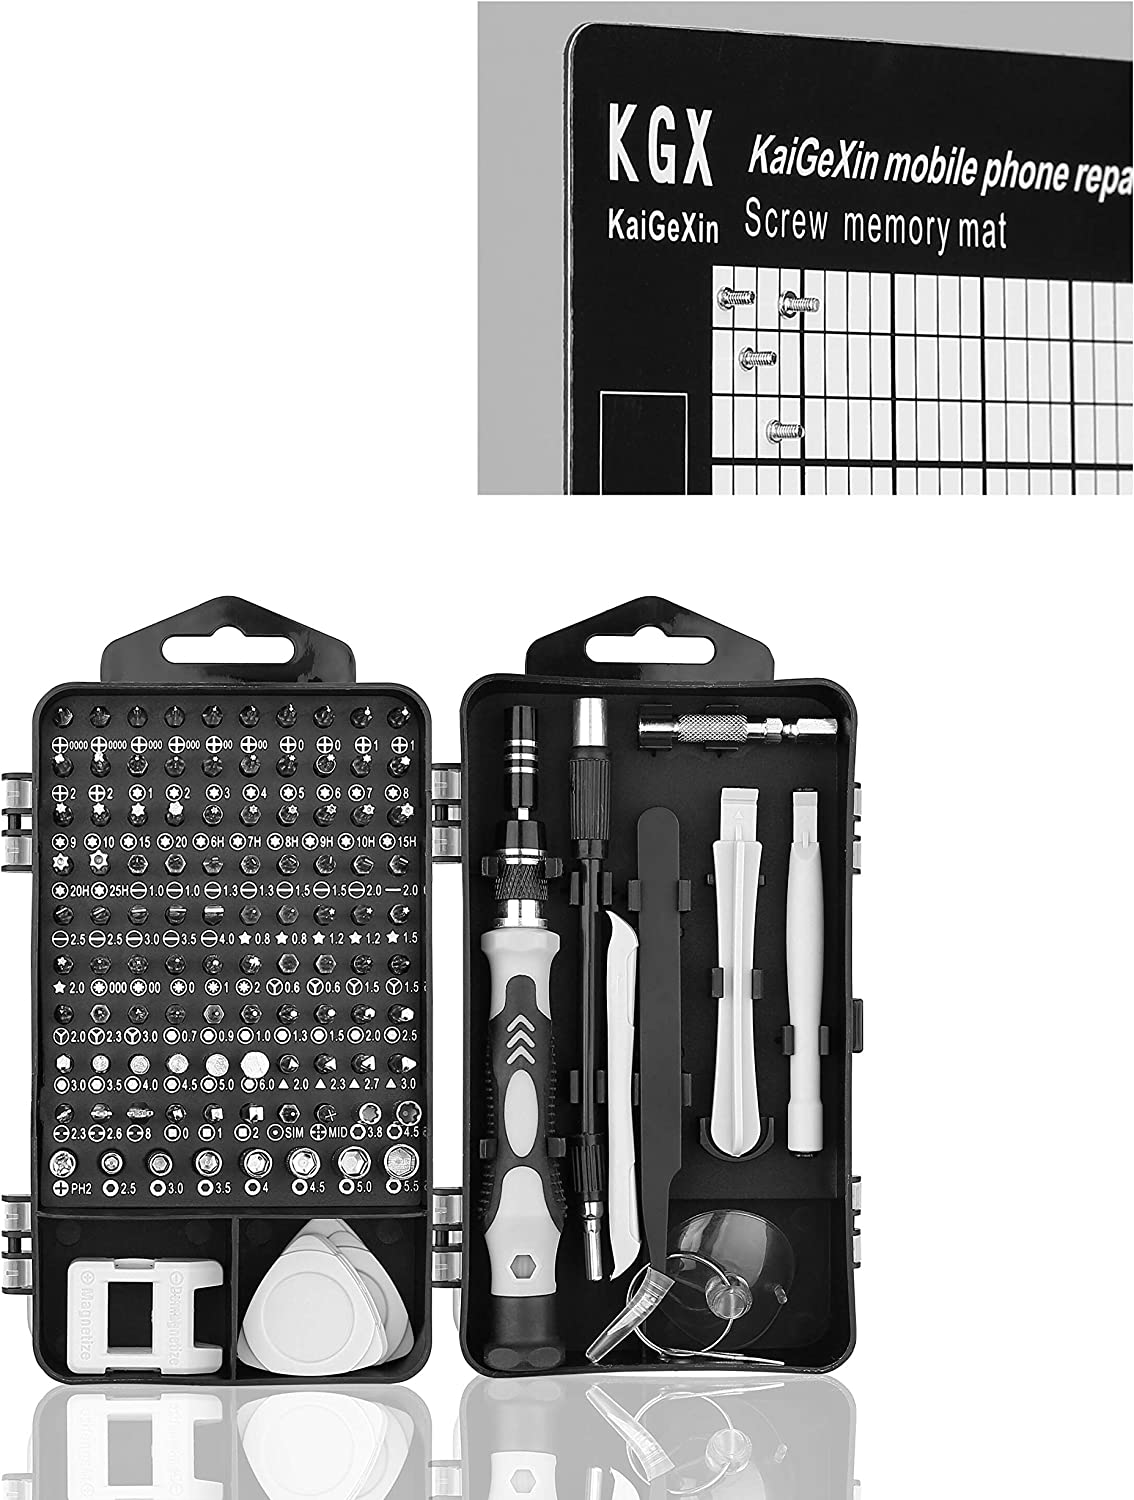 Hautton Mini Precision Screwdriver Set, 118 in 1 Magnetic Screwdriver Bit Kit, Multi-Function Stainless Steel Professional Repair Tool Kit for Phone, Laptop, PC, Glasses, Electronics, and More -Black